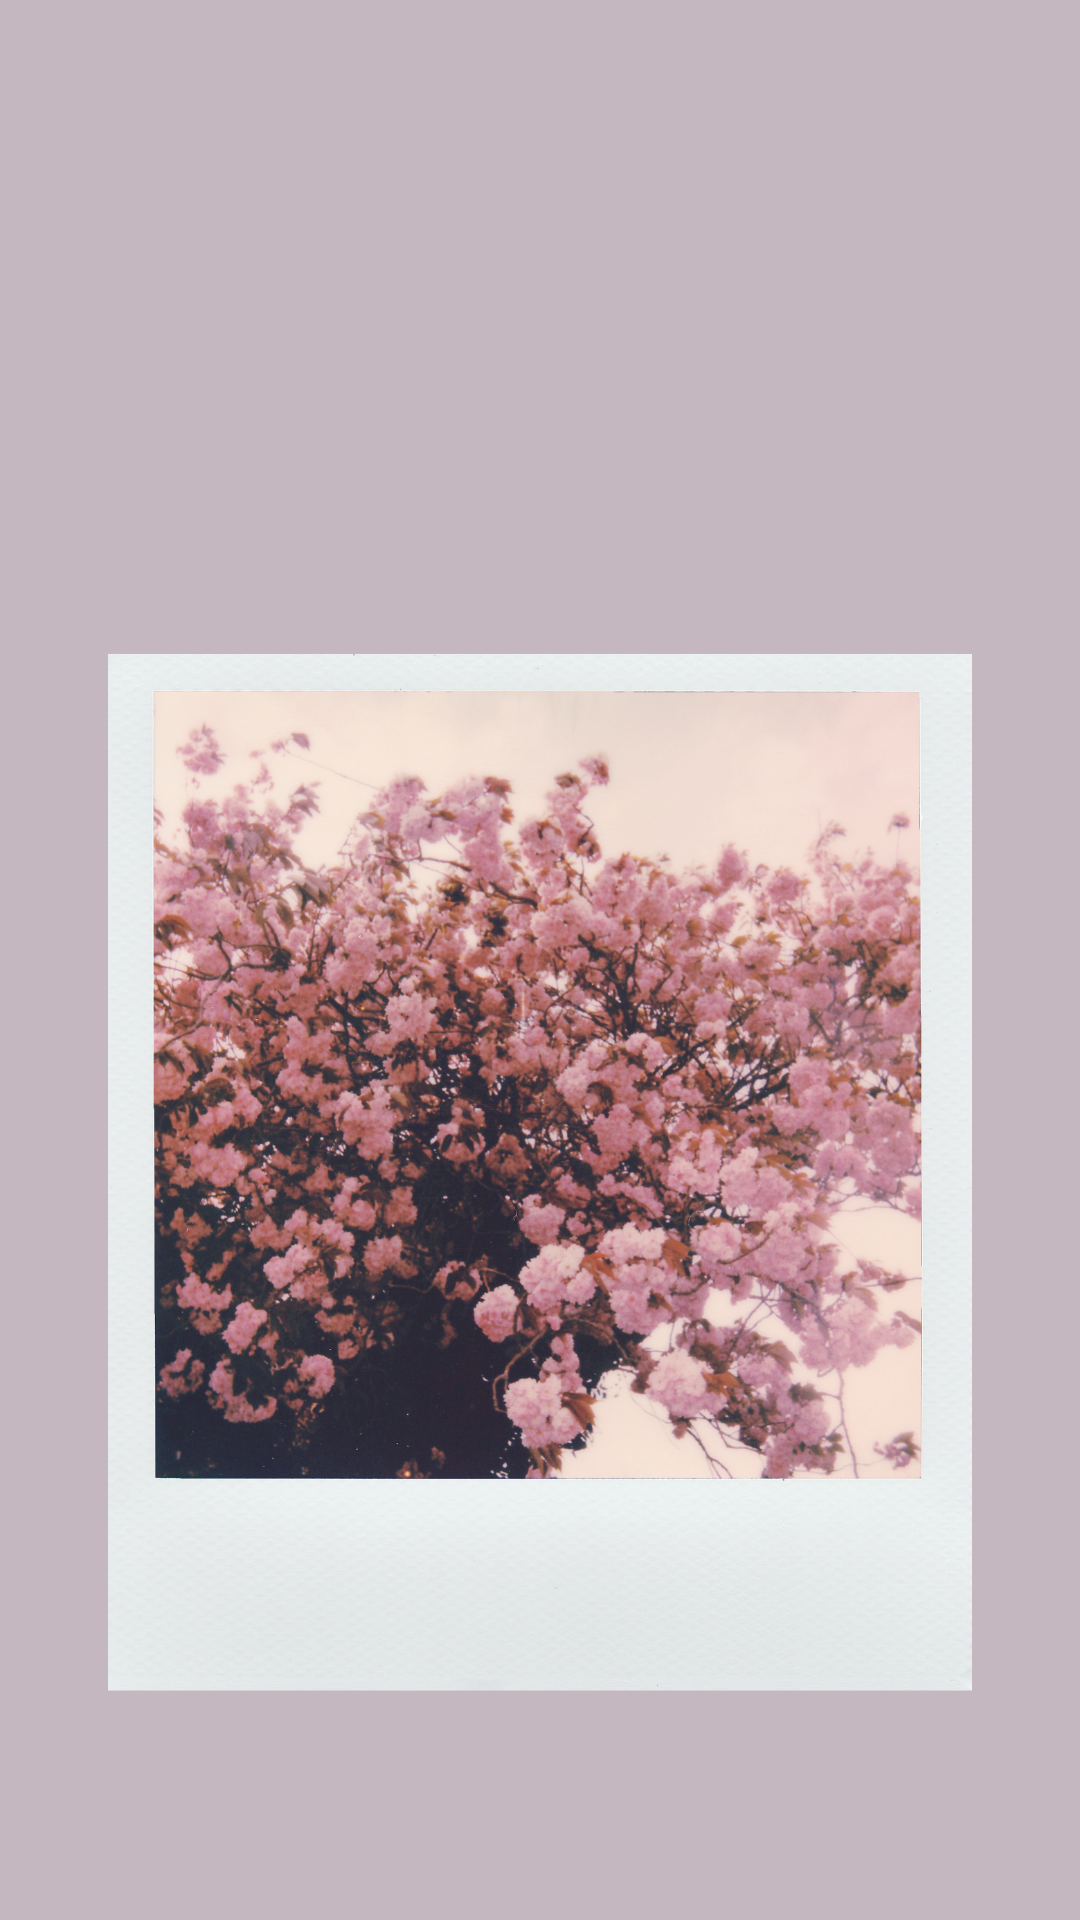 Free Aesthetic Phone Wallpapers for Spring